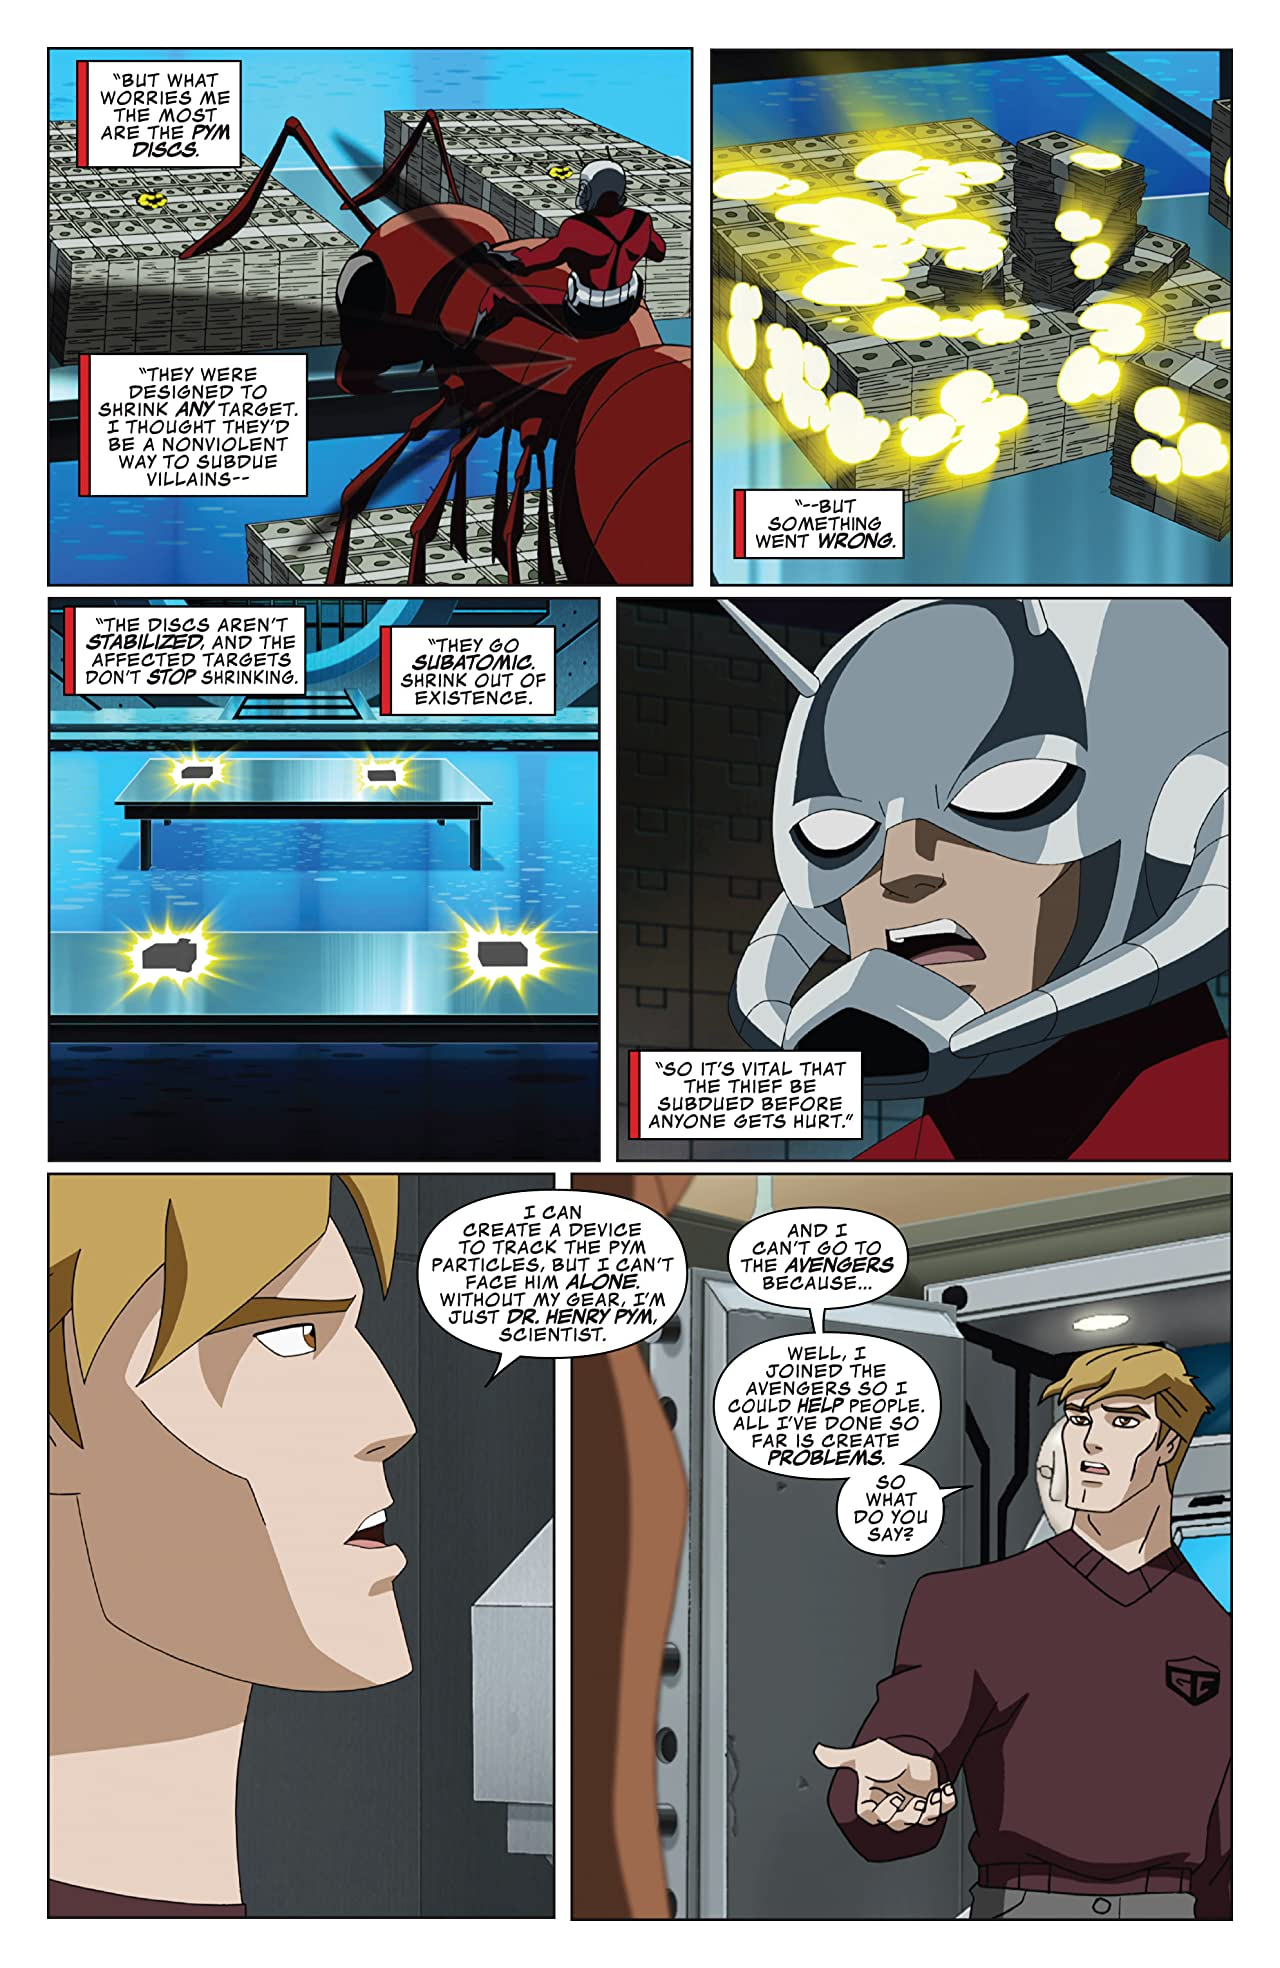 Marvel Universe Avengers: Earth's Mightiest Heroes (2012-2013) #17